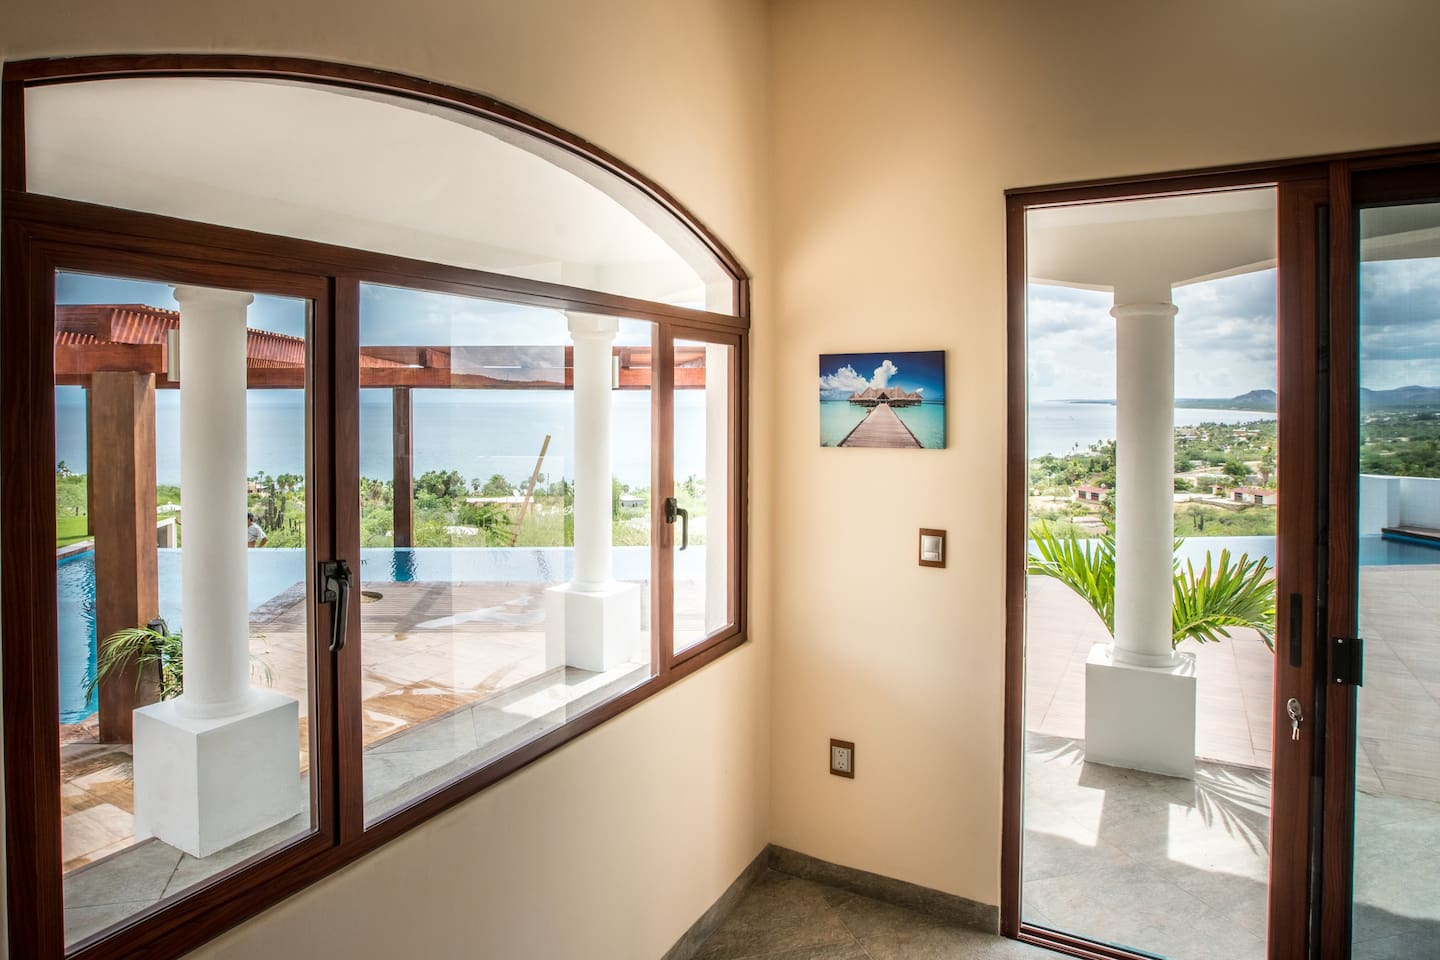 Room #1 has 2 views, the large window provide an incredible view over the sea and Kids' pool area.